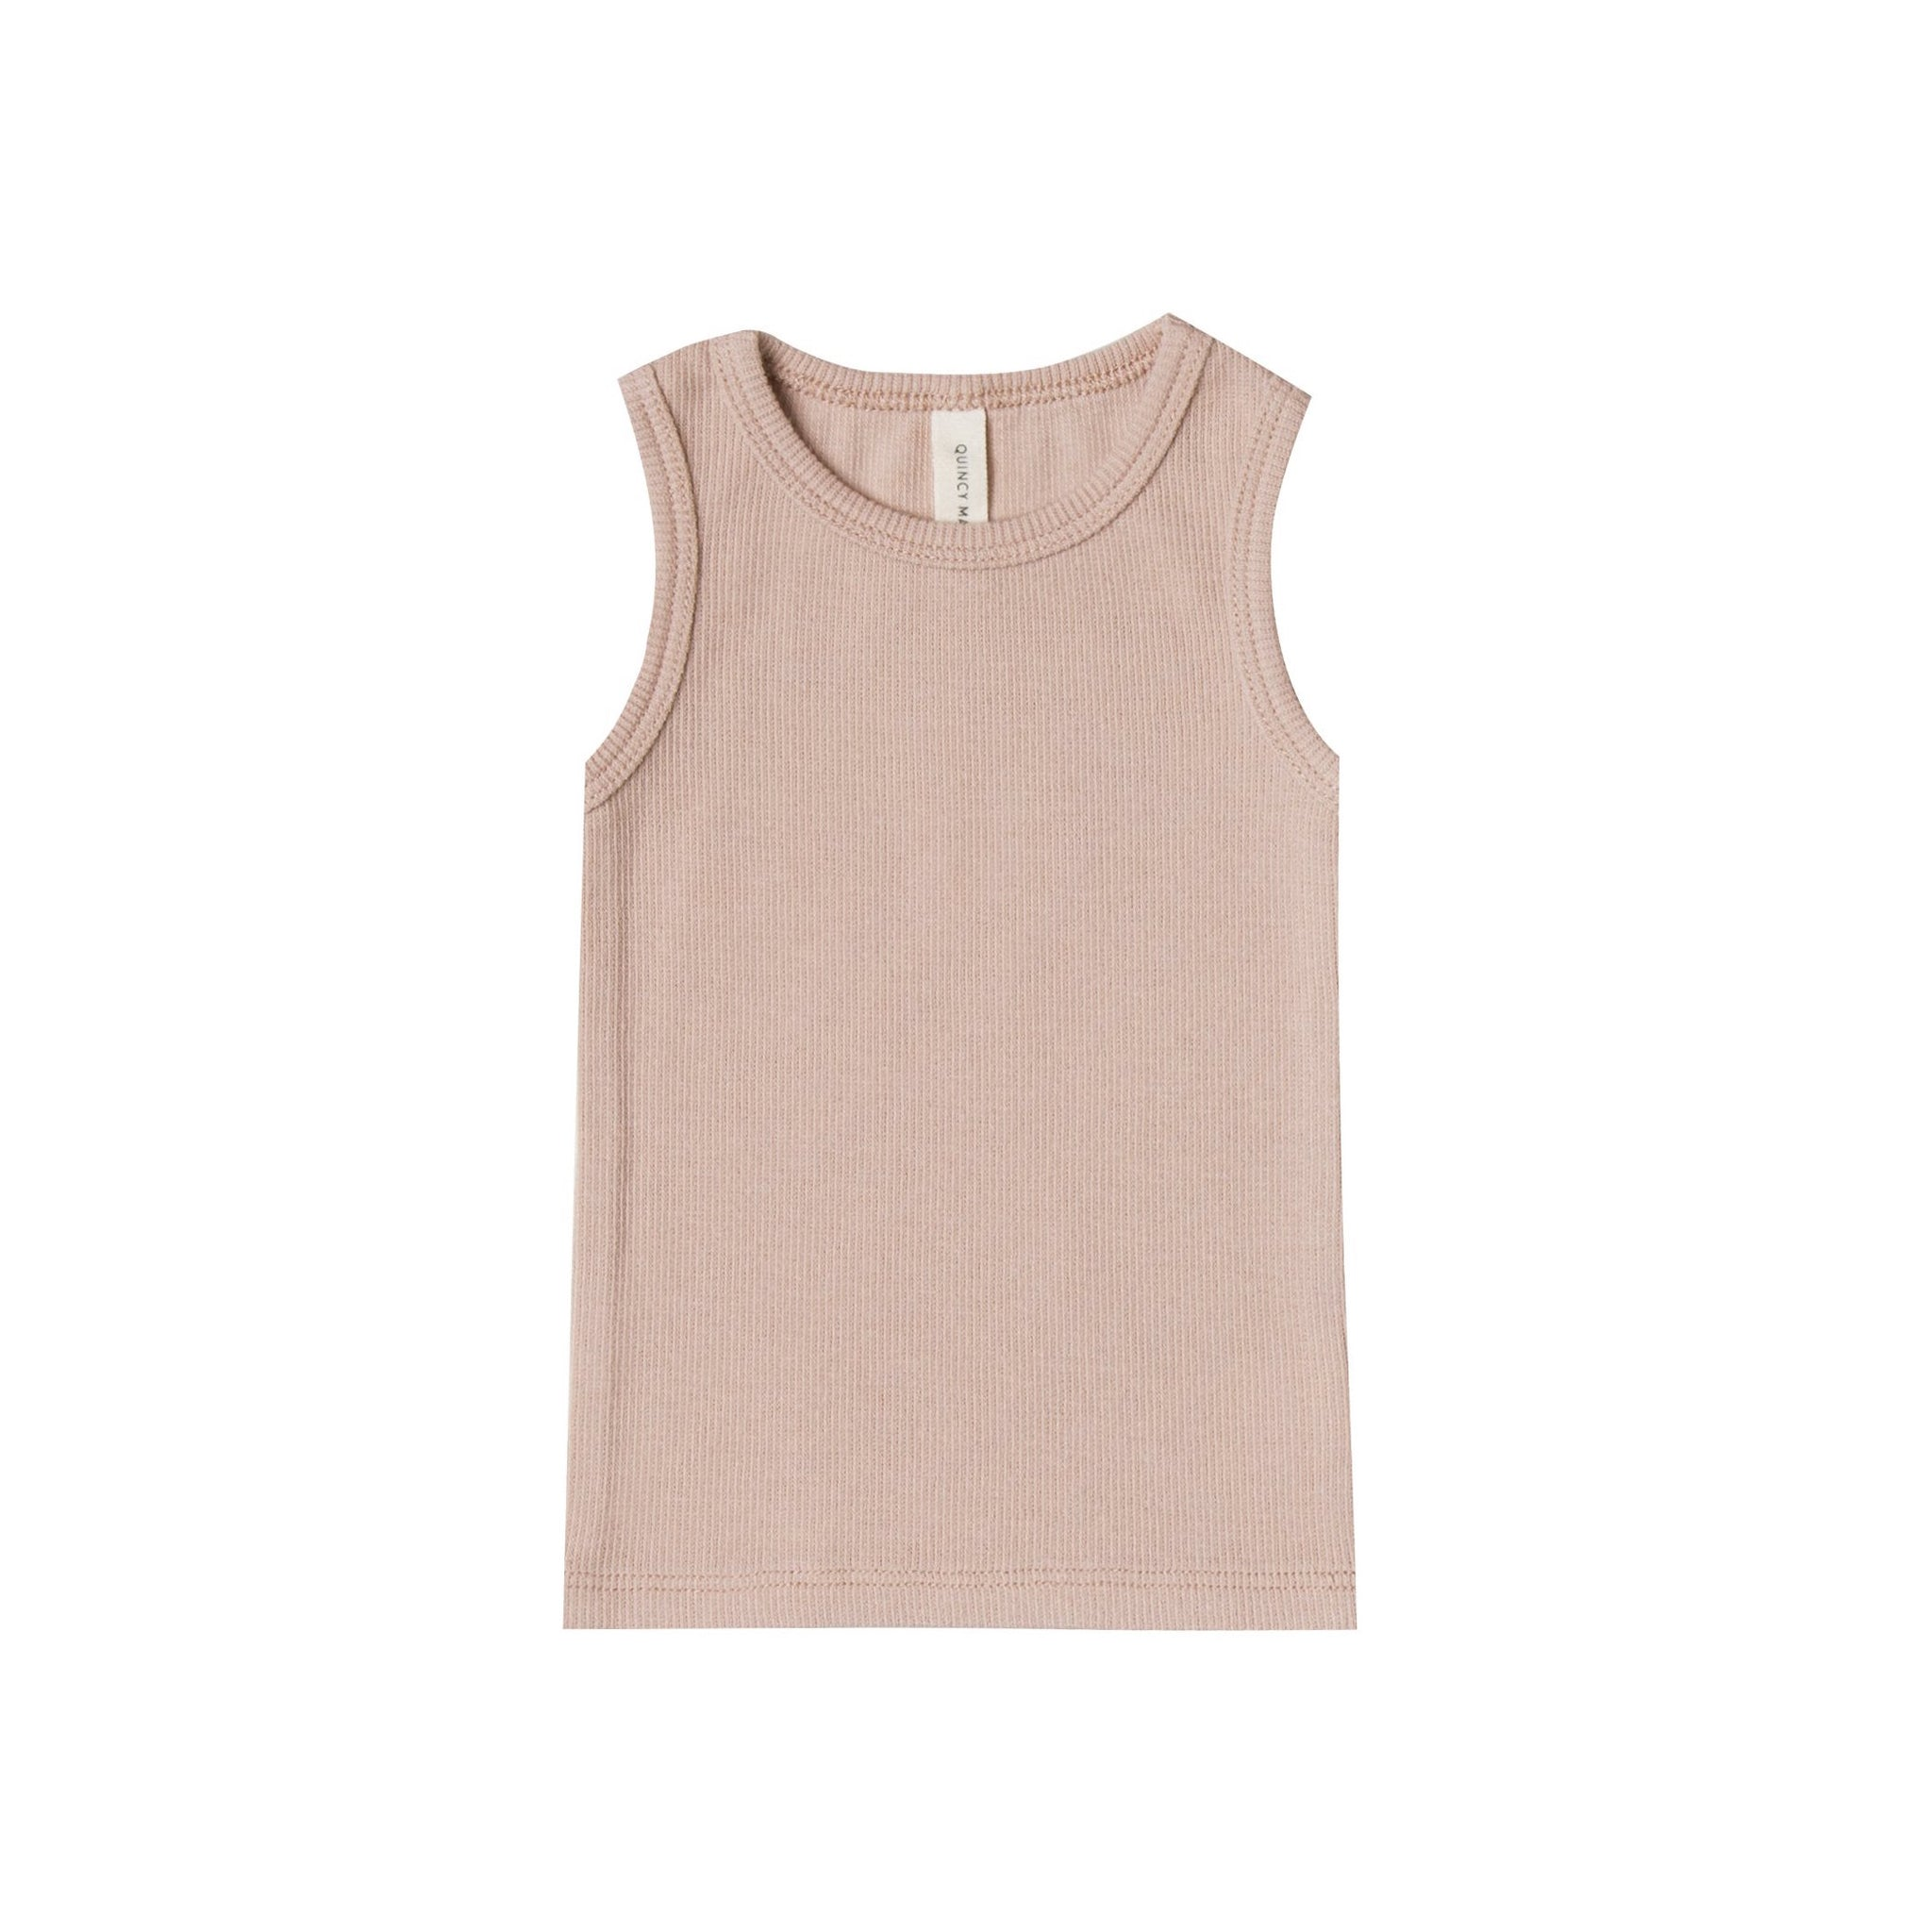 Quincy Mae ribbed organic cotton baby tank top in rose